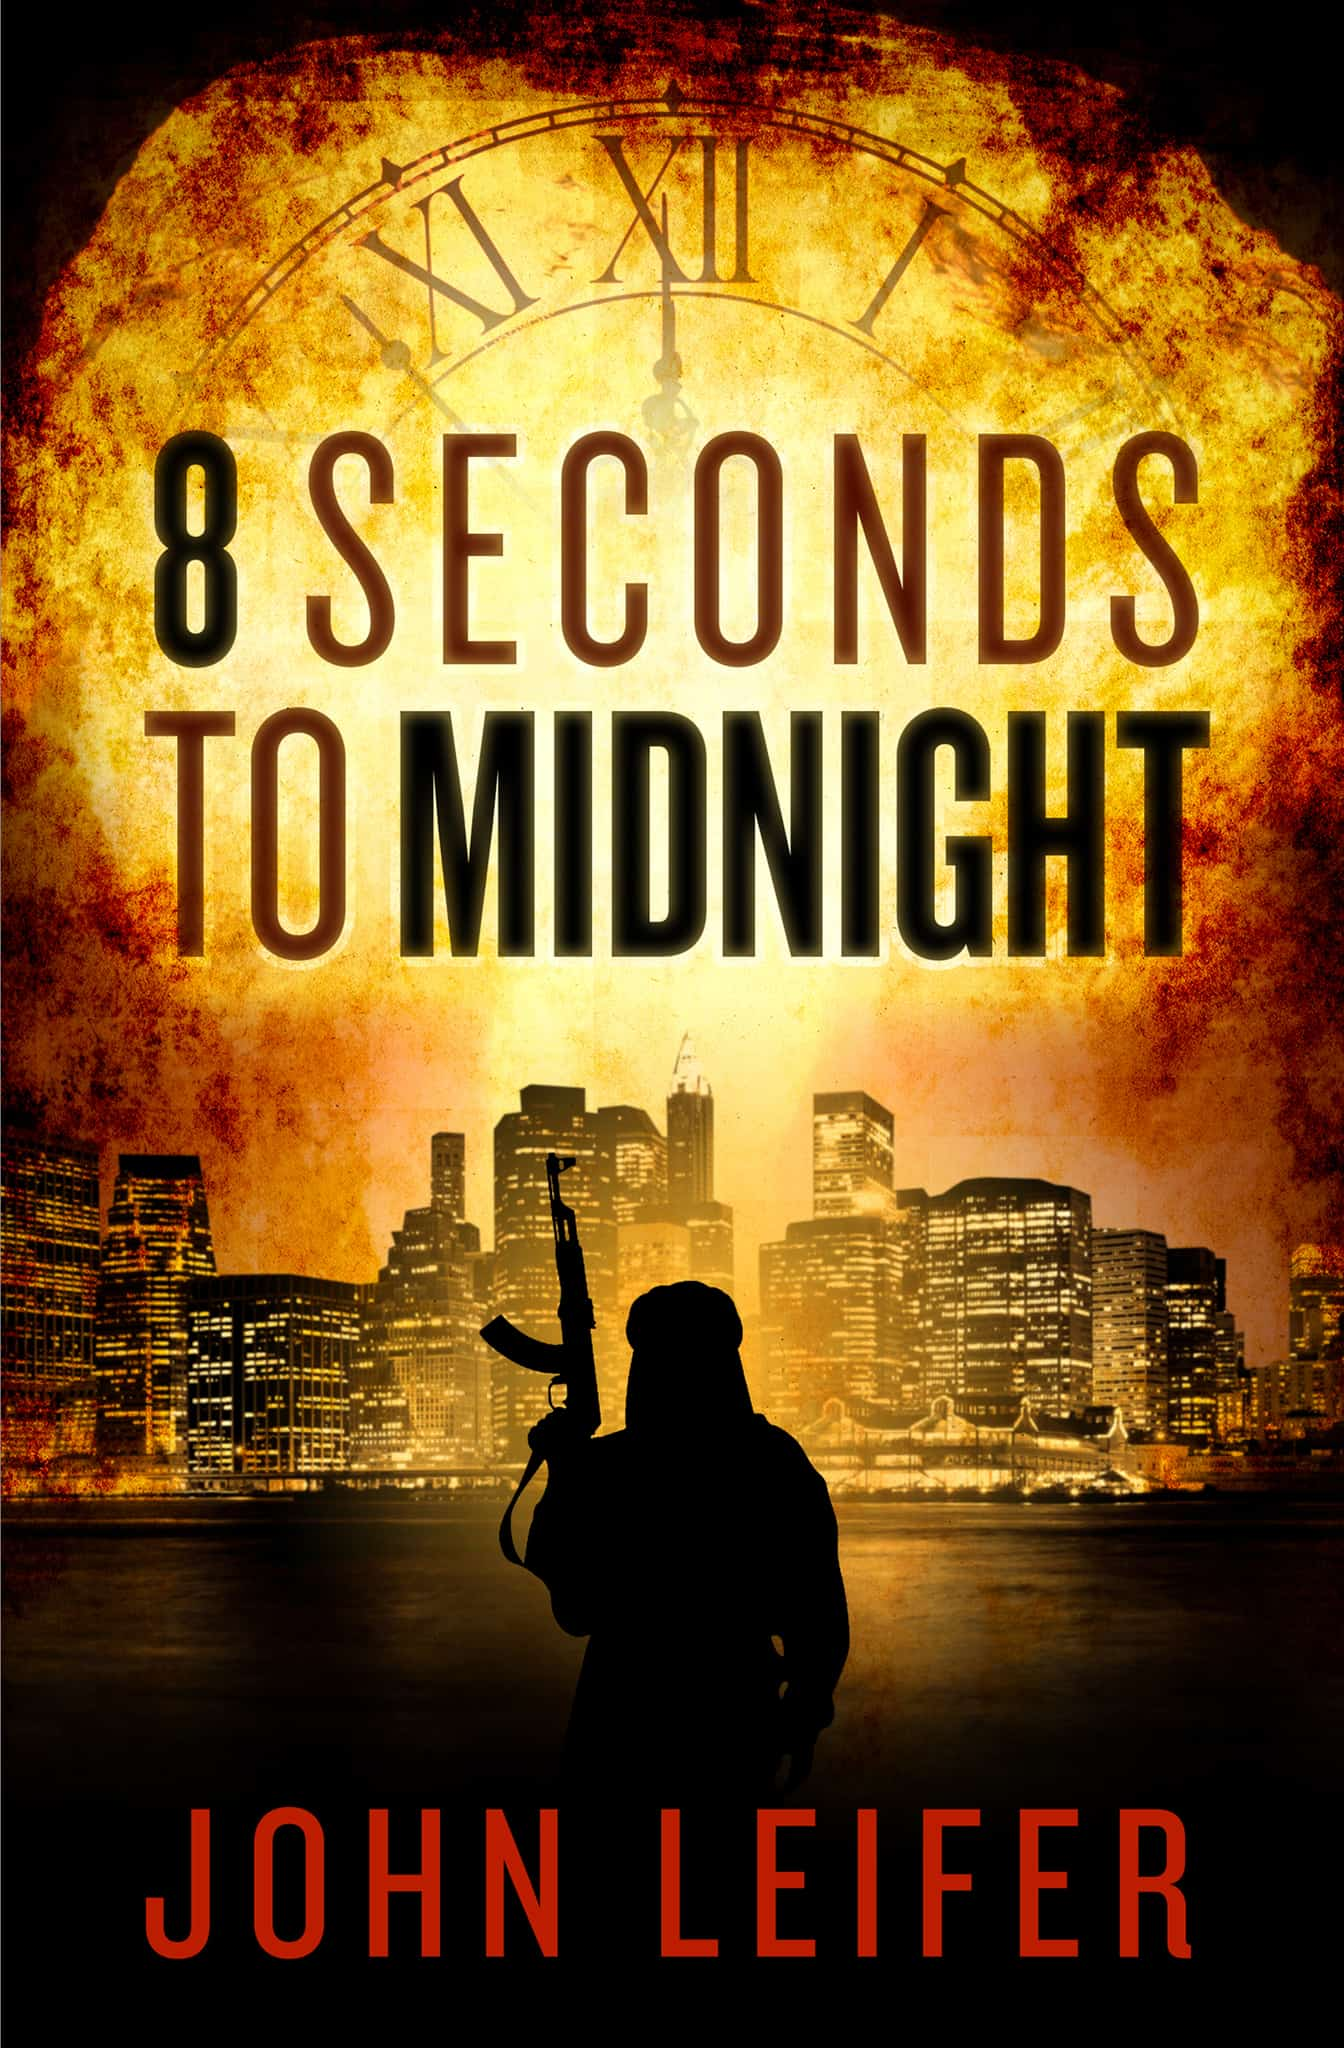 8 seconds to midnight 2018 john leifer - 8 Seconds to Midnight